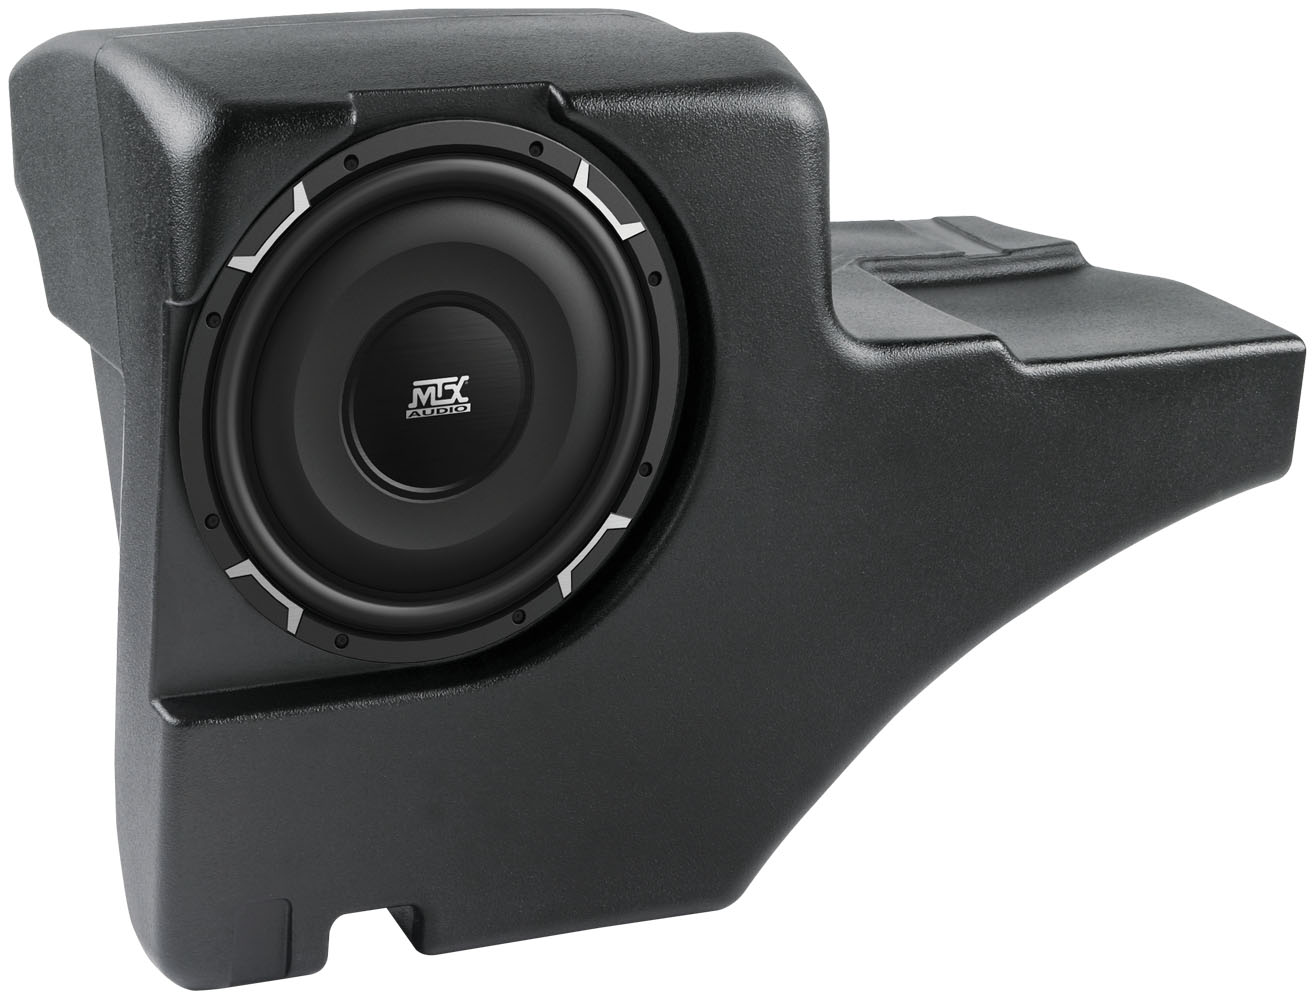 Chevrolet Tahoe 2001-2006 ThunderForm Custom Amplified Subwoofer Enclosure  | MTX Audio - Serious About Sound®